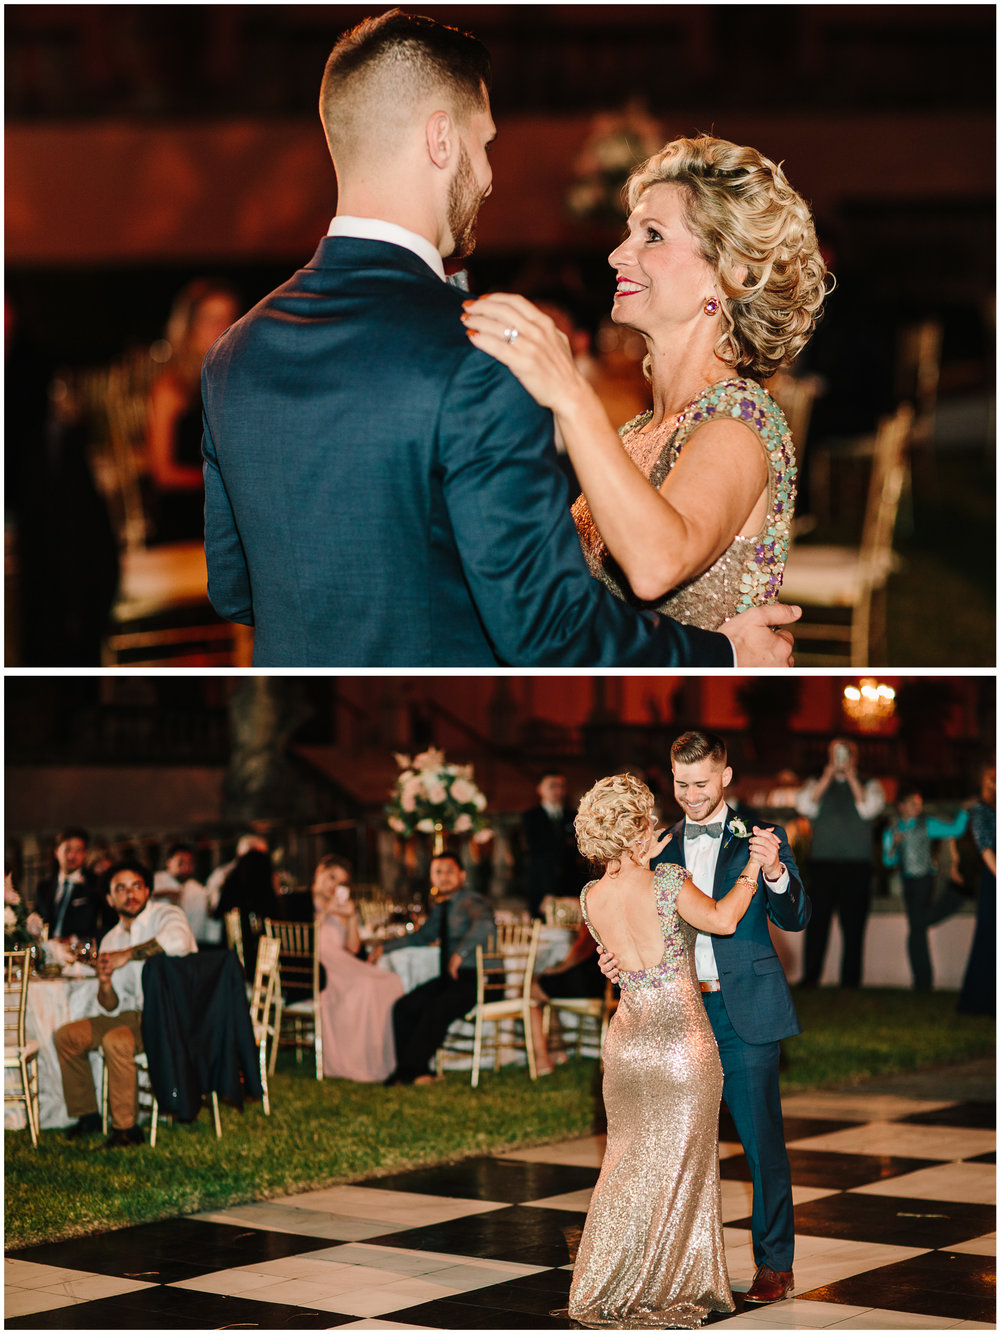 the_ringling_wedding_96.jpg